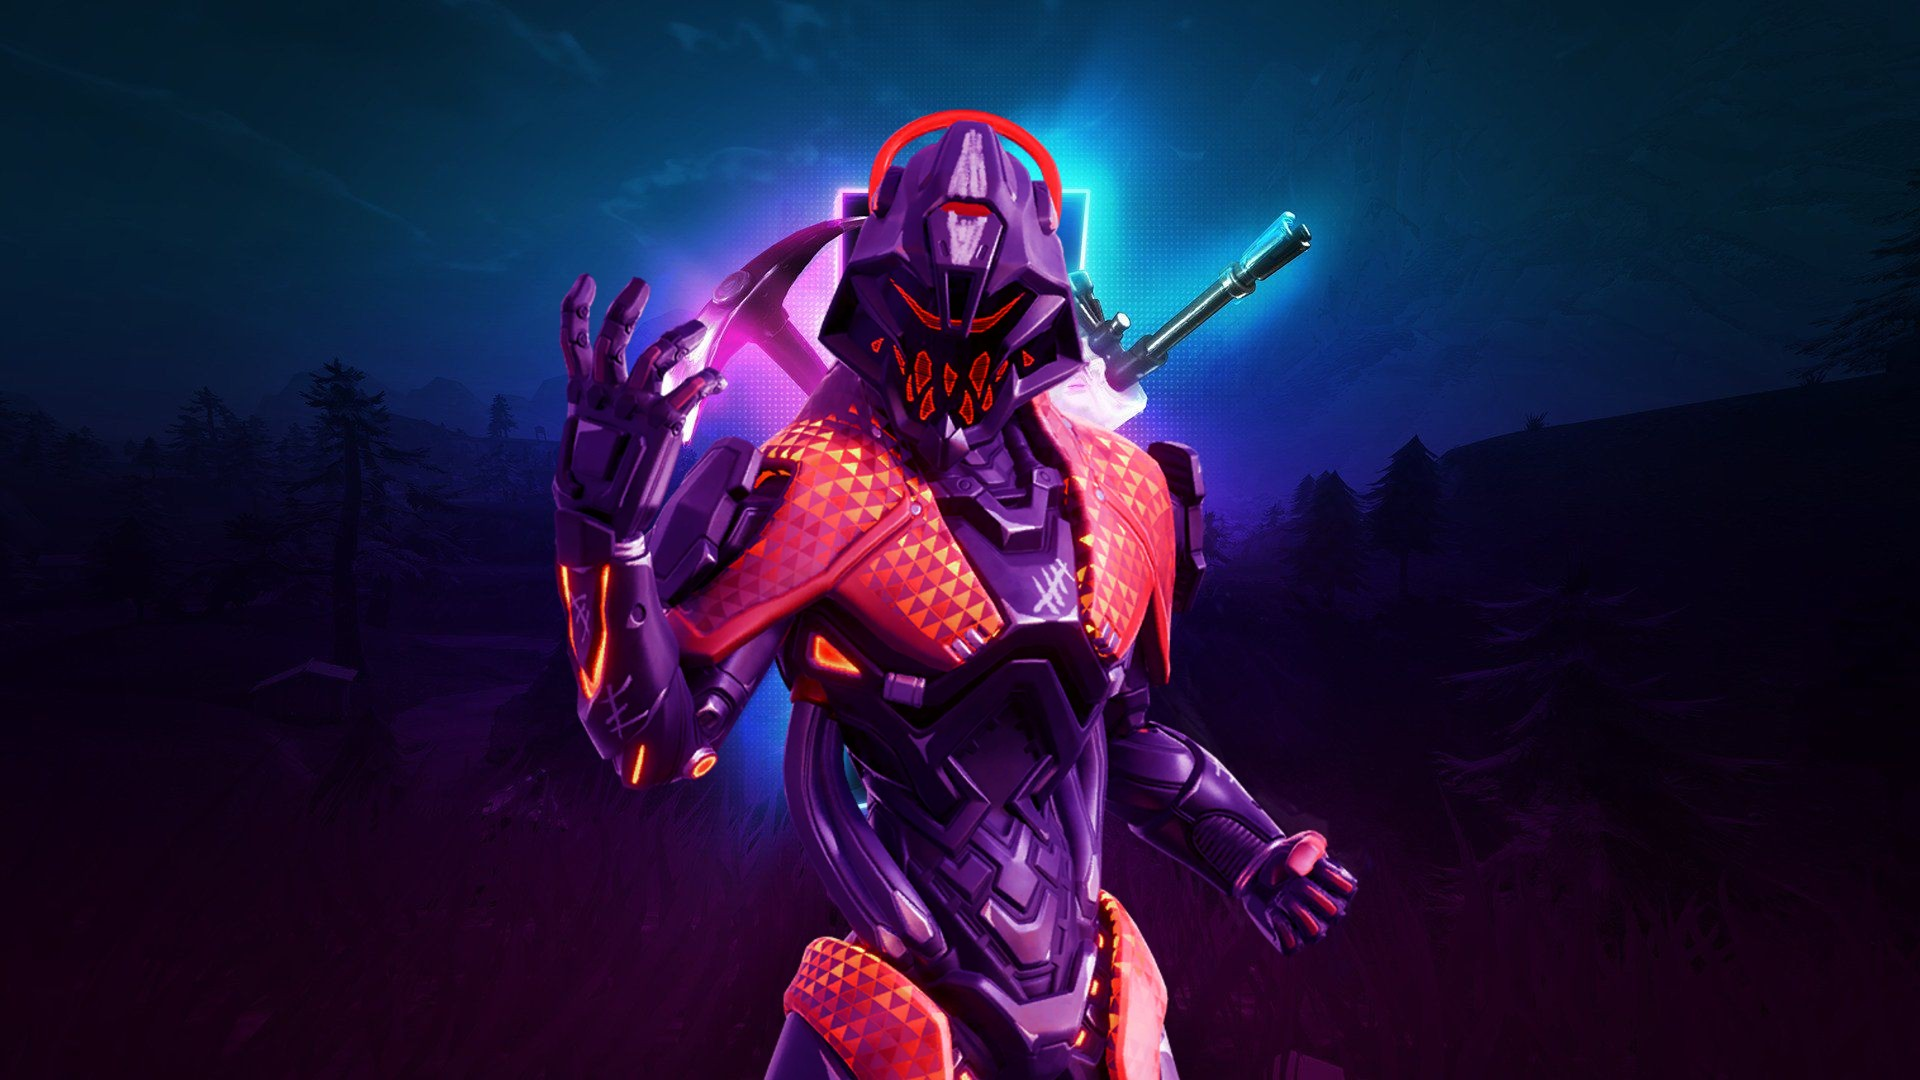 Fortnite Zero Point Wallpapers Top Free Fortnite Zero Point Backgrounds Wallpaperaccess